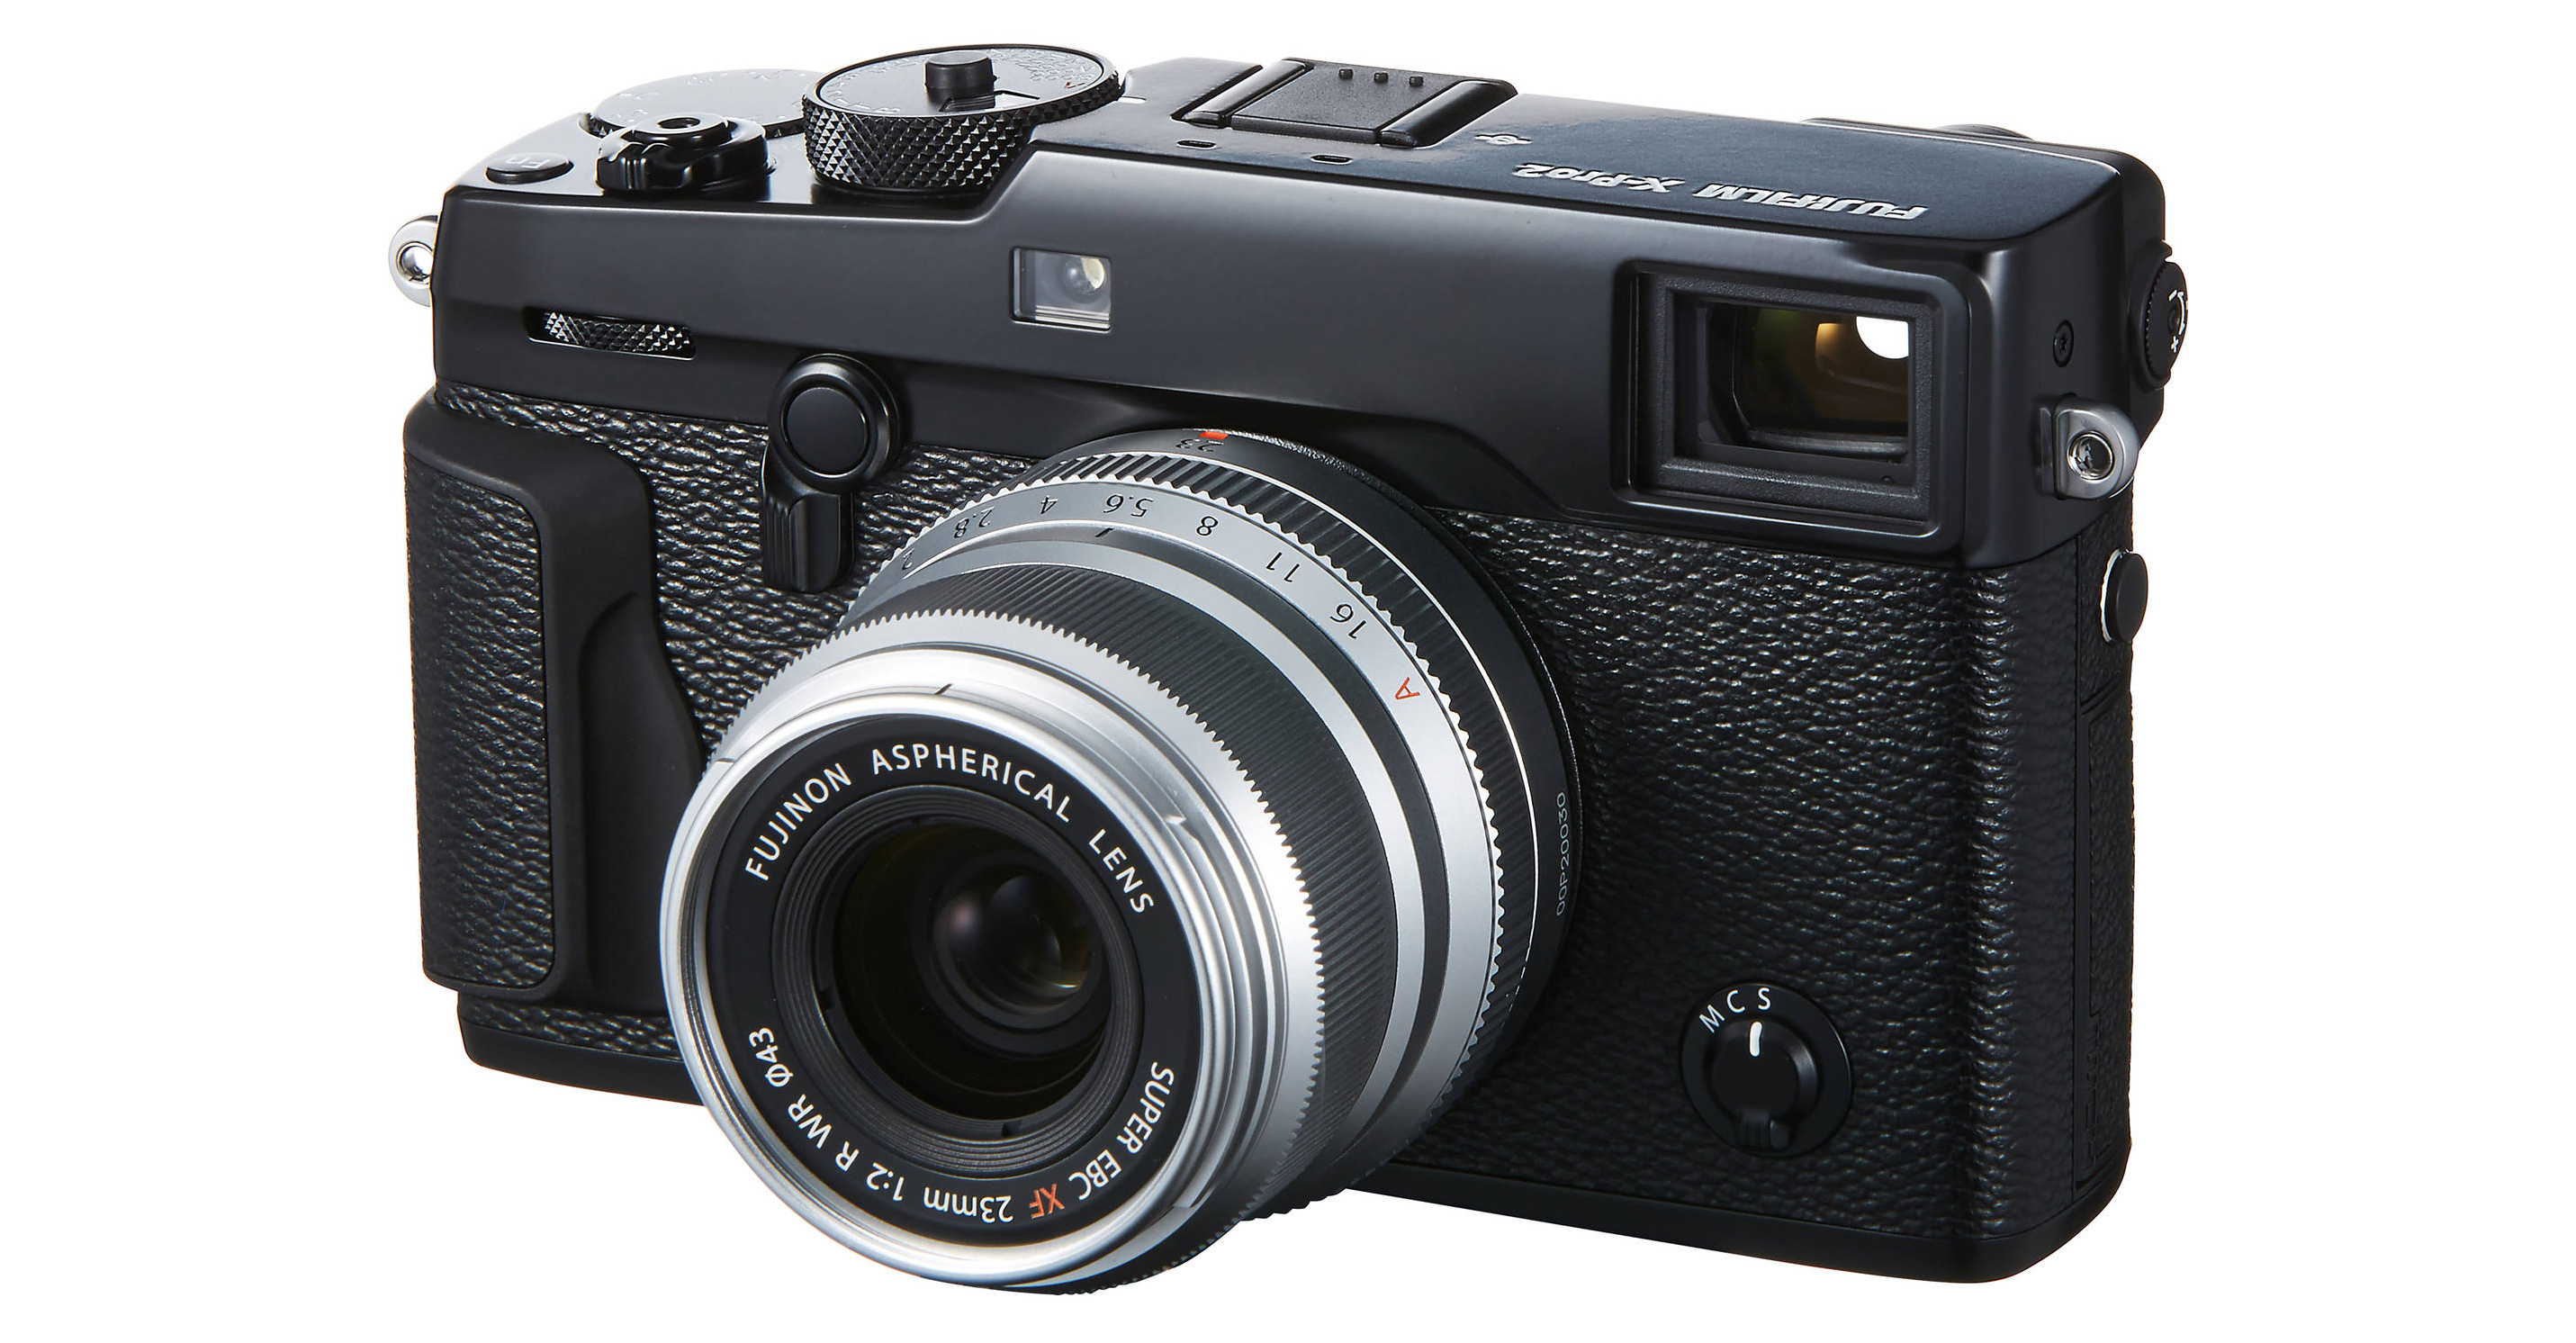 Fuji 23mm f/2 Announced - Compact 35mm Equivalent For Street Photographers